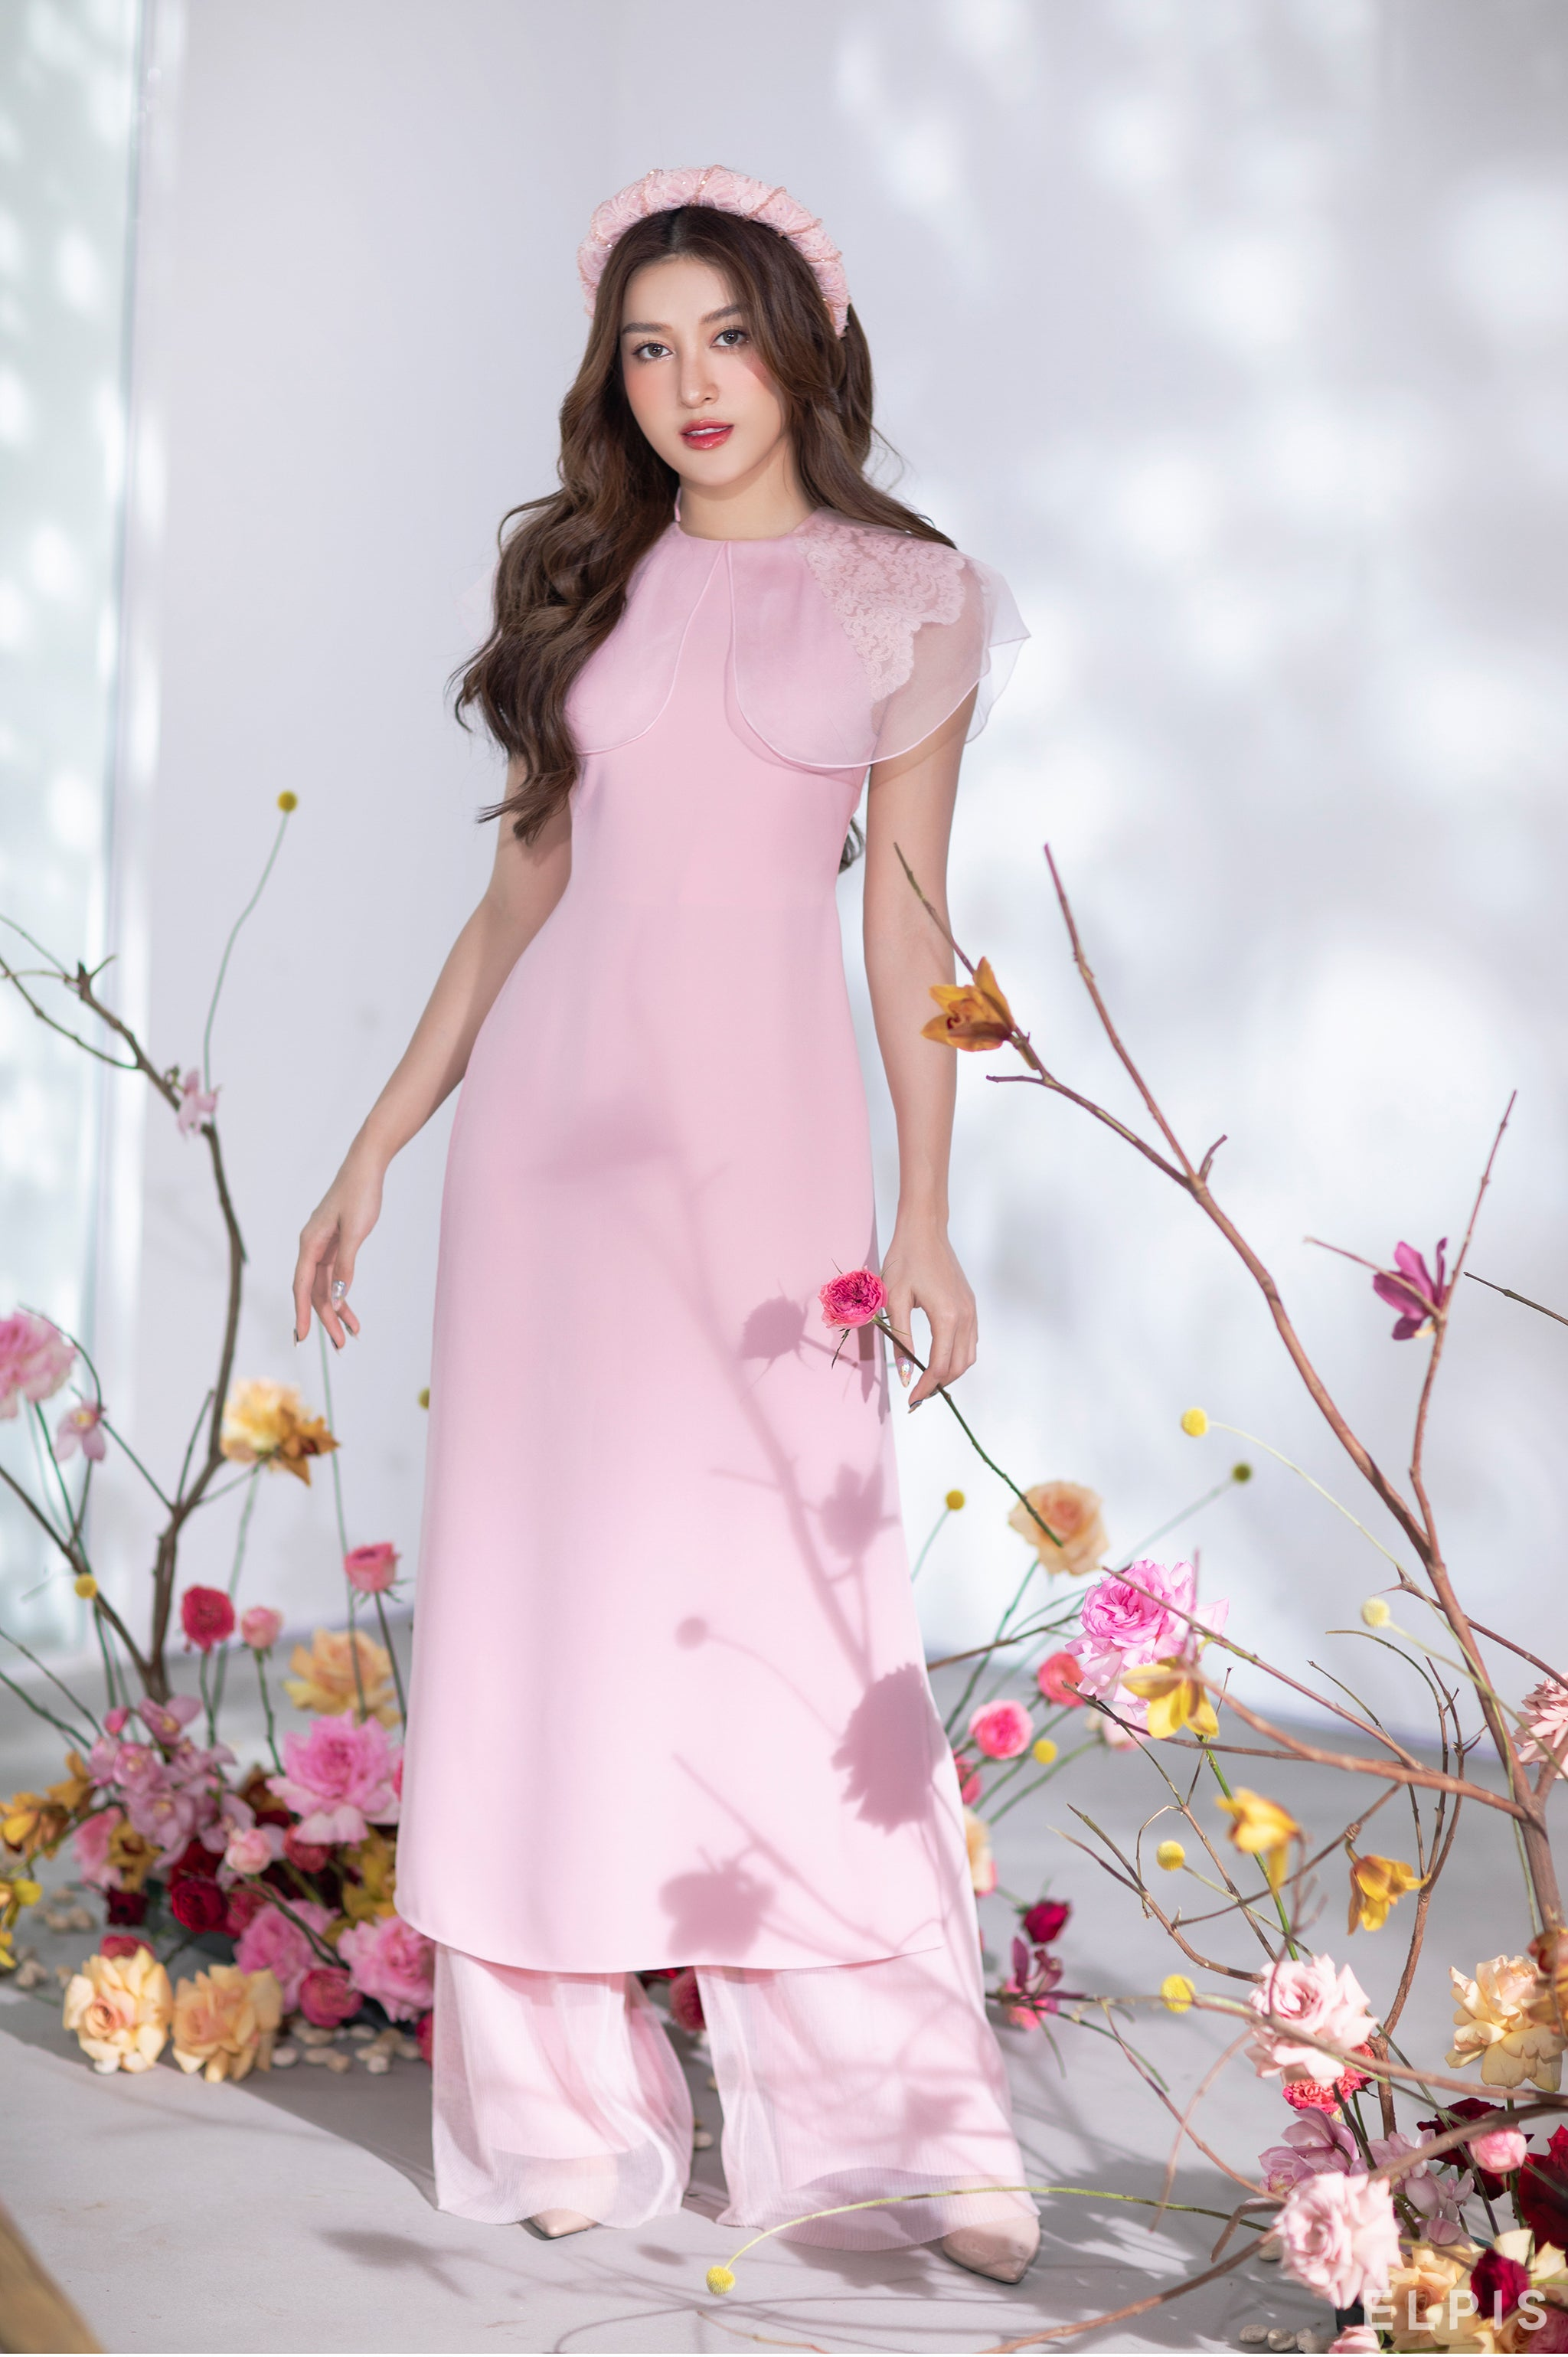 Ao dai featuring round collar, layers detailing | AN LANH